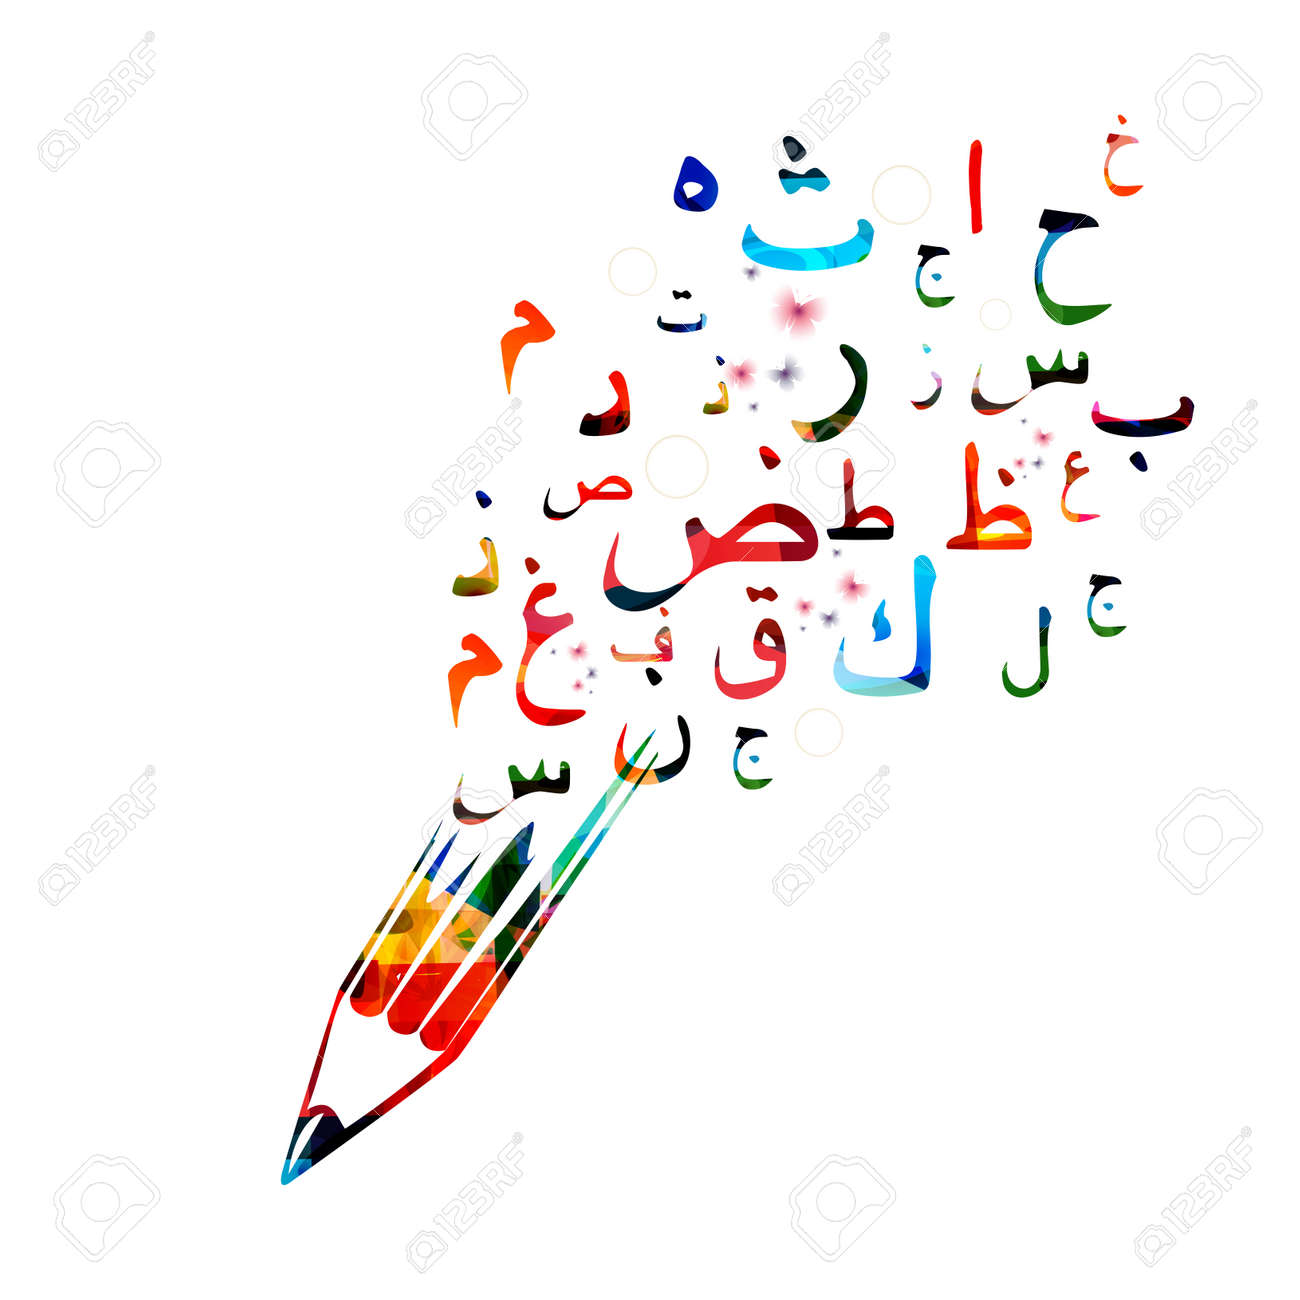 Arabic Islamic Calligraphy Symbols Vector Illustration Colorful Alphabet Text Design Letters And